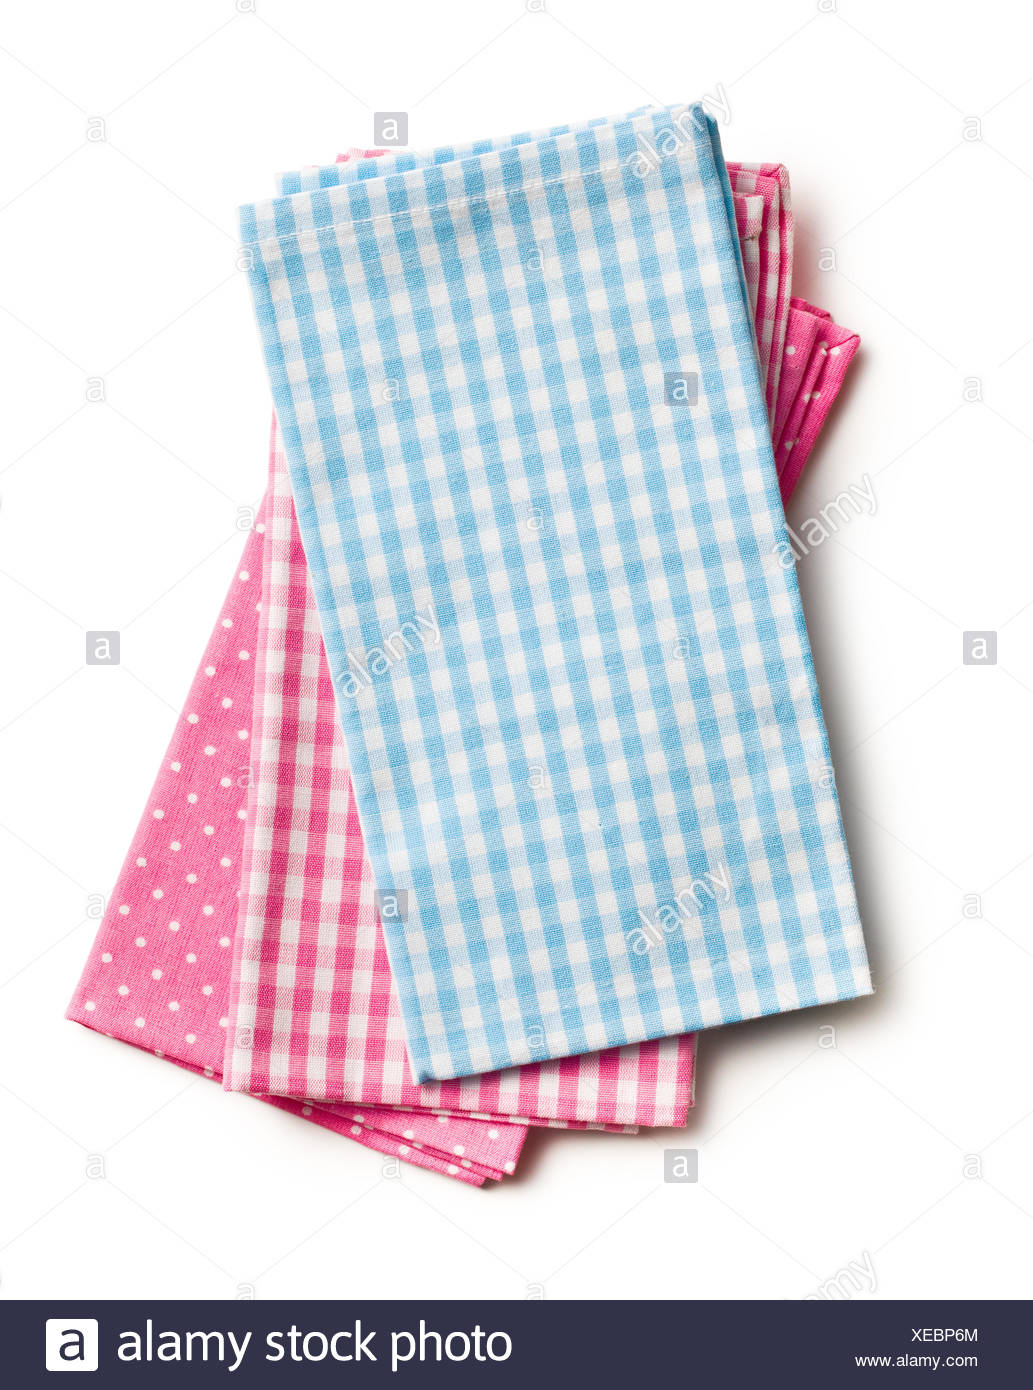 kitchen napkins one hole faucet top view of colorful on white background stock photo